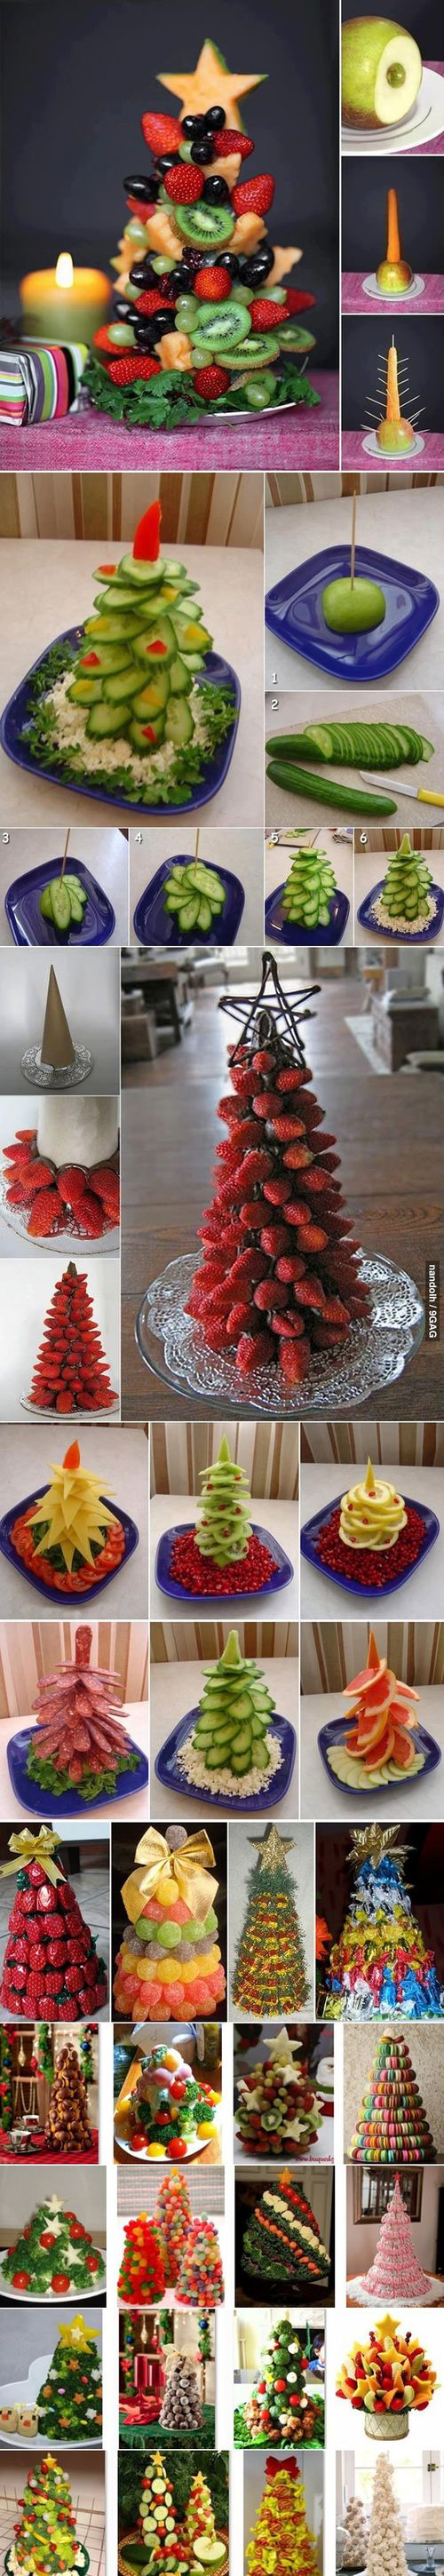 Fruit over the door christmas decoration - Food Trees Guide With Pictures For Creating Beautiful And Cute Trees From Fruit And Vegetables Can Be Christmas Can Be Just A Party Food Tree